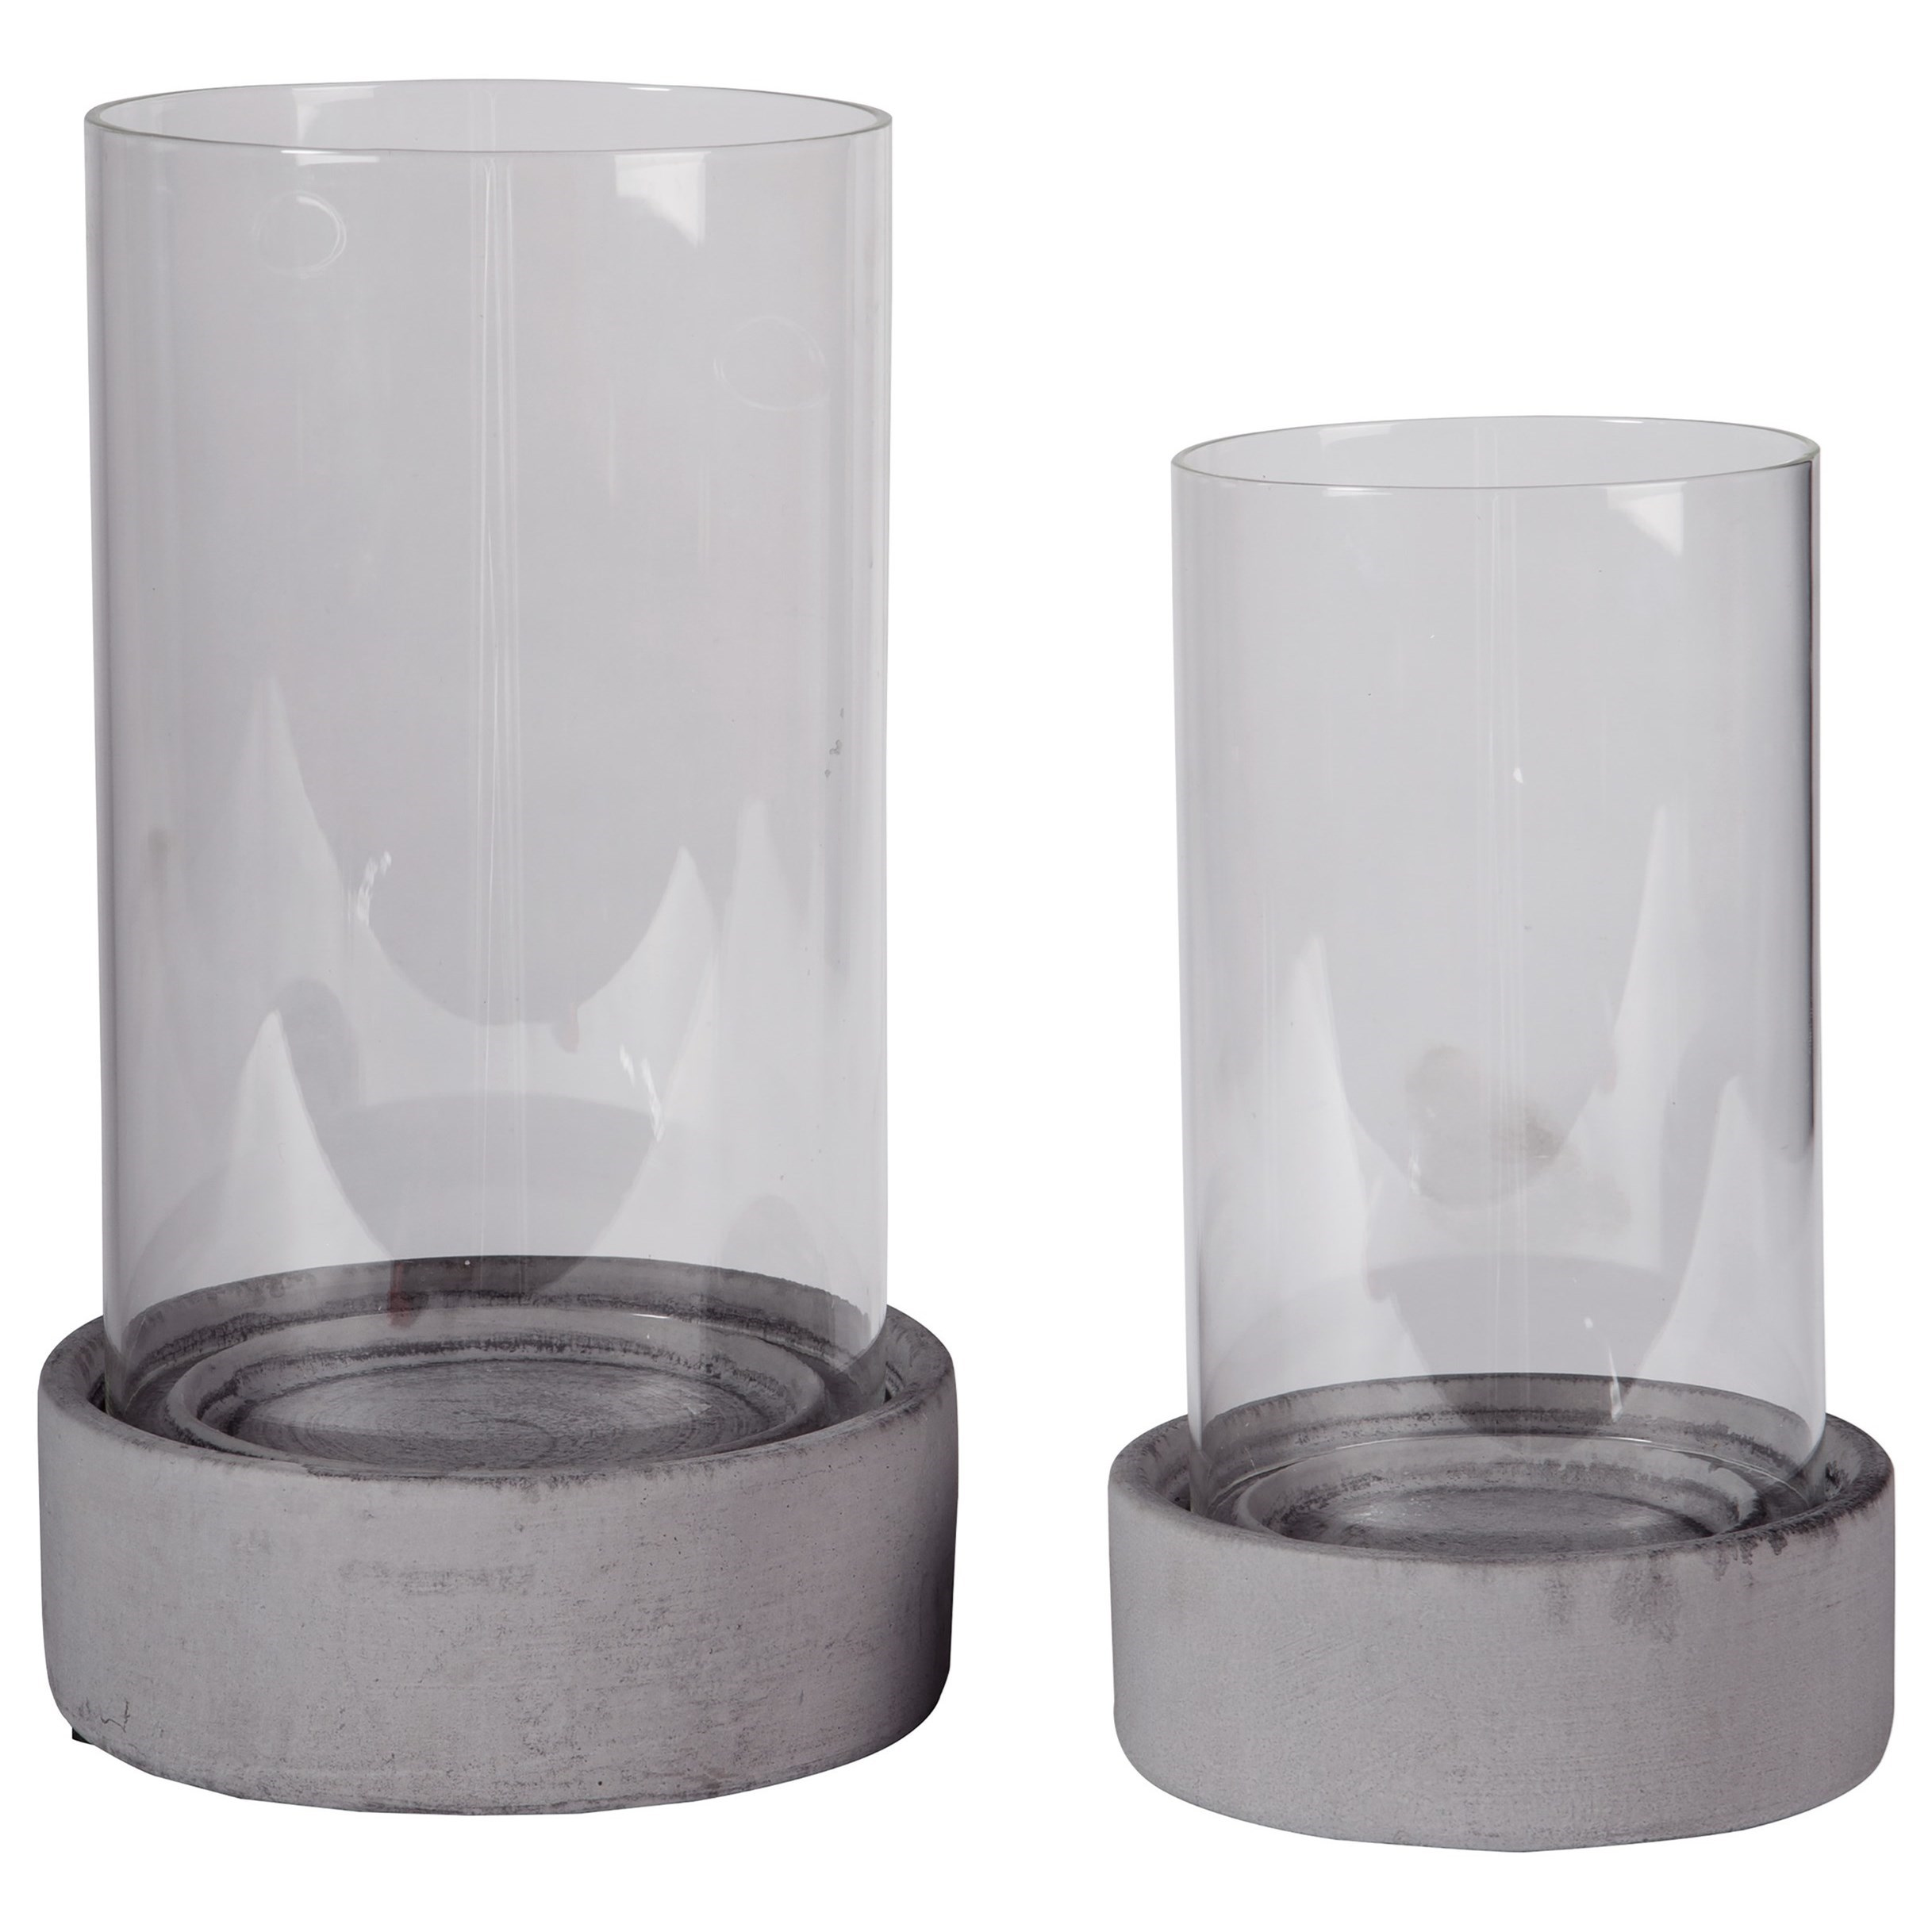 Signature Design by Ashley Furniture Accents Dieter Gray Candle Holder Set - Item Number: A2000276